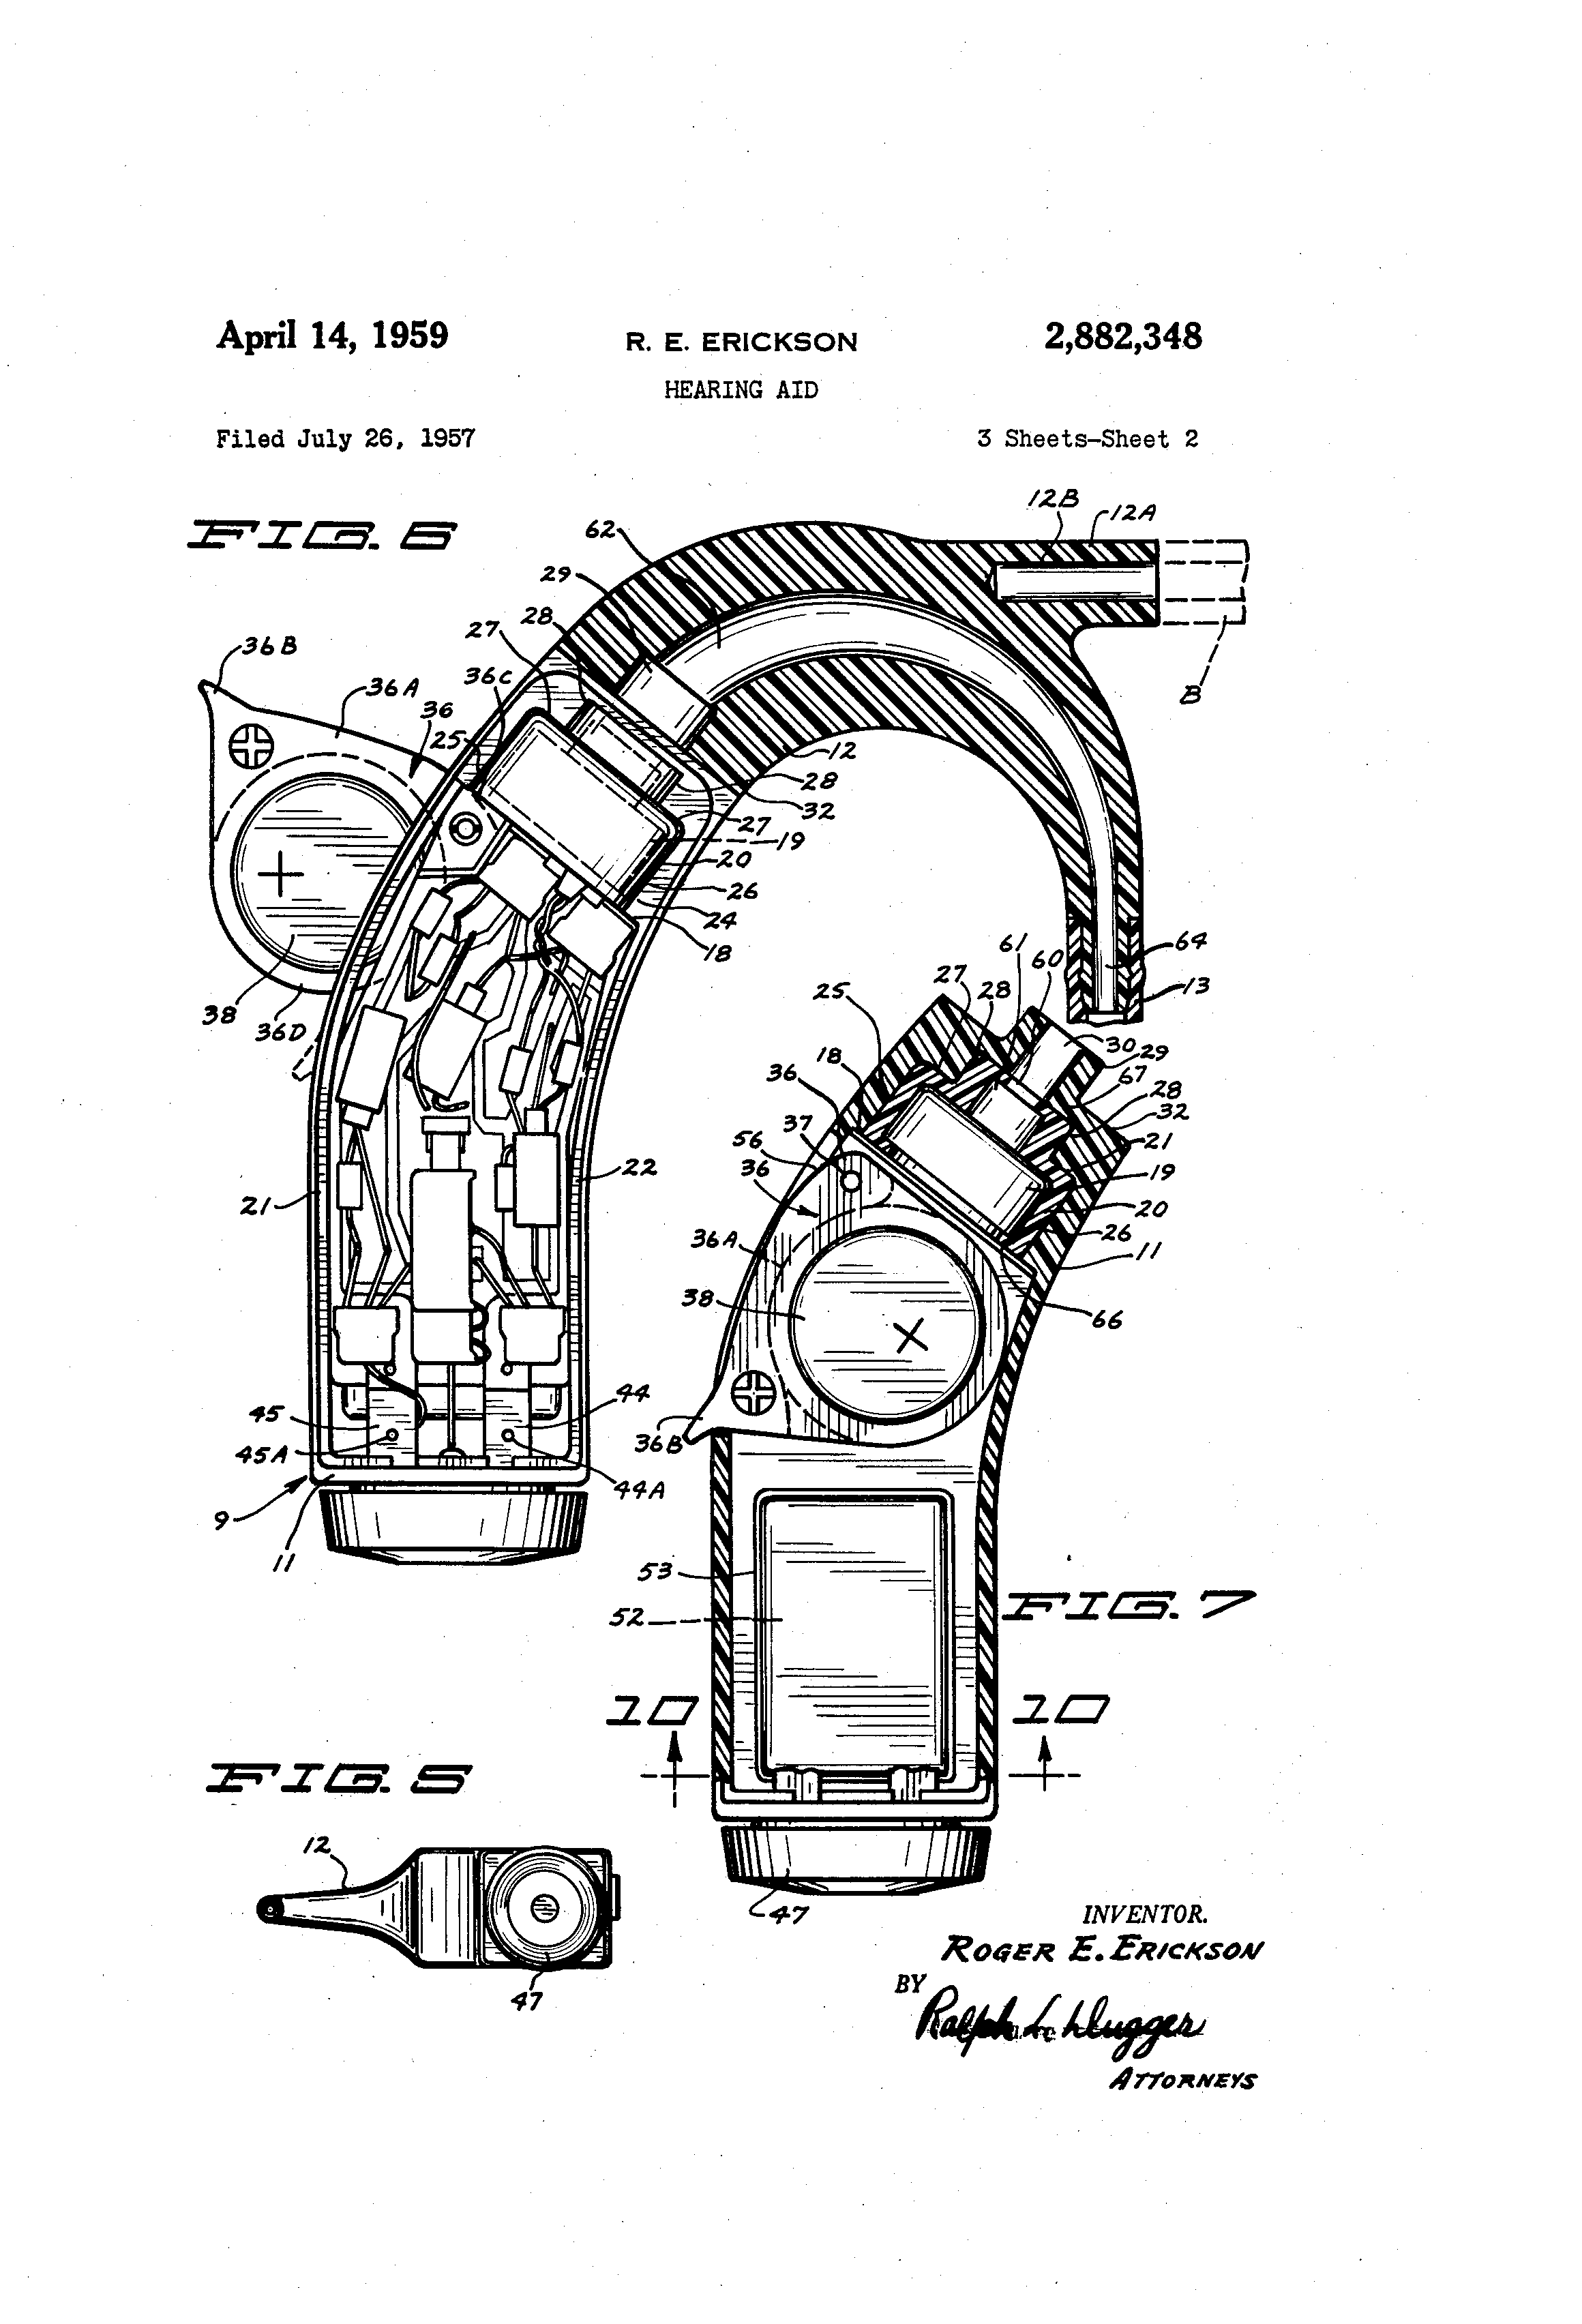 patent us2882348 - hearing aid